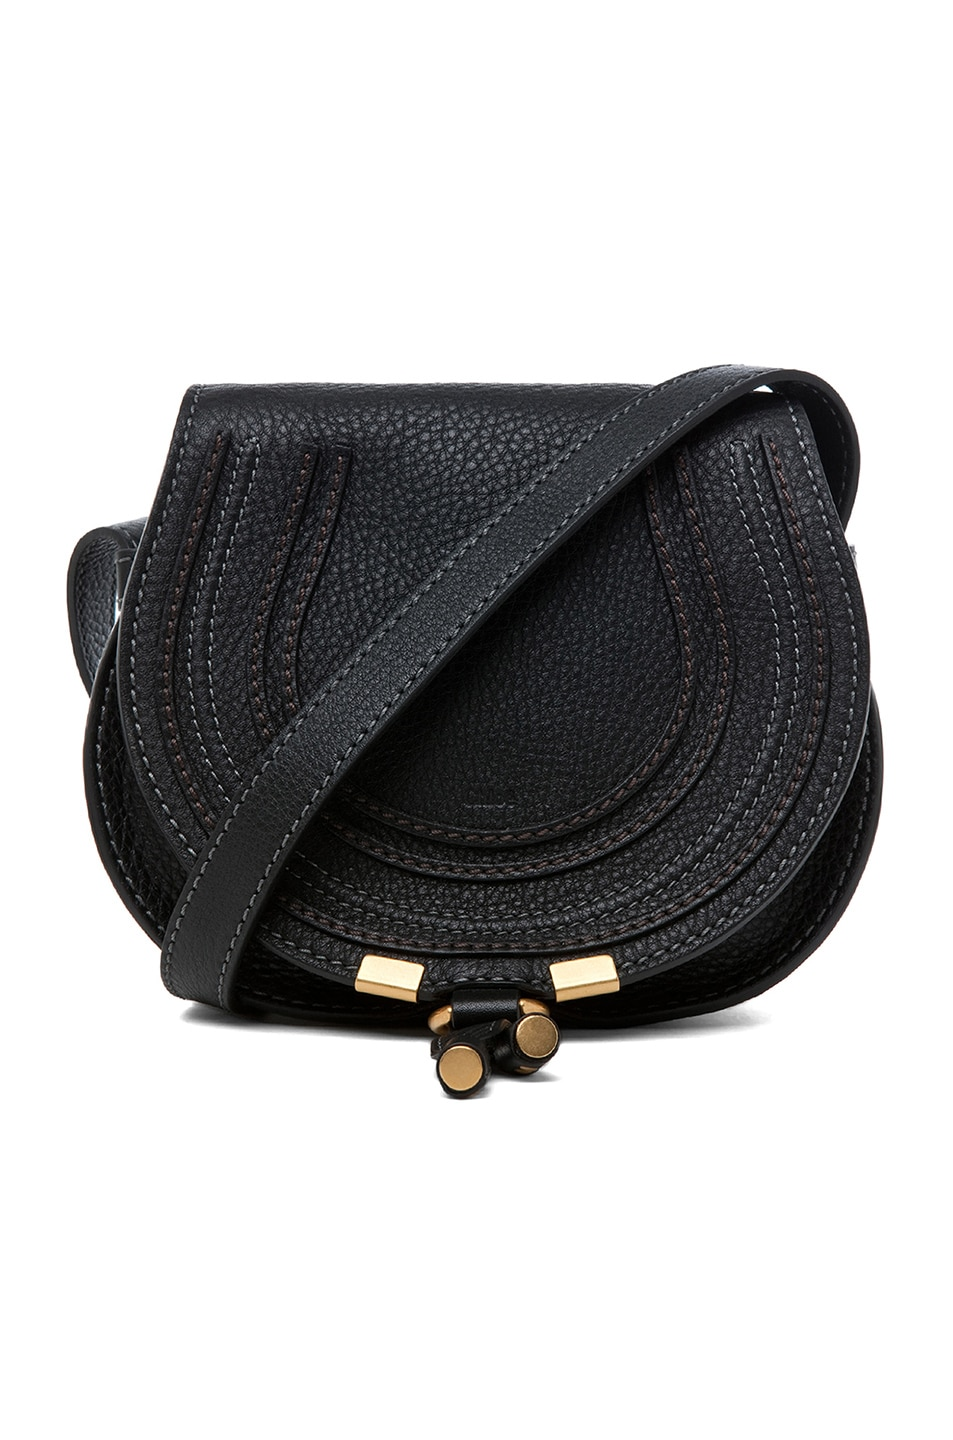 Image 1 of Chloe Marcie Satchel in Black